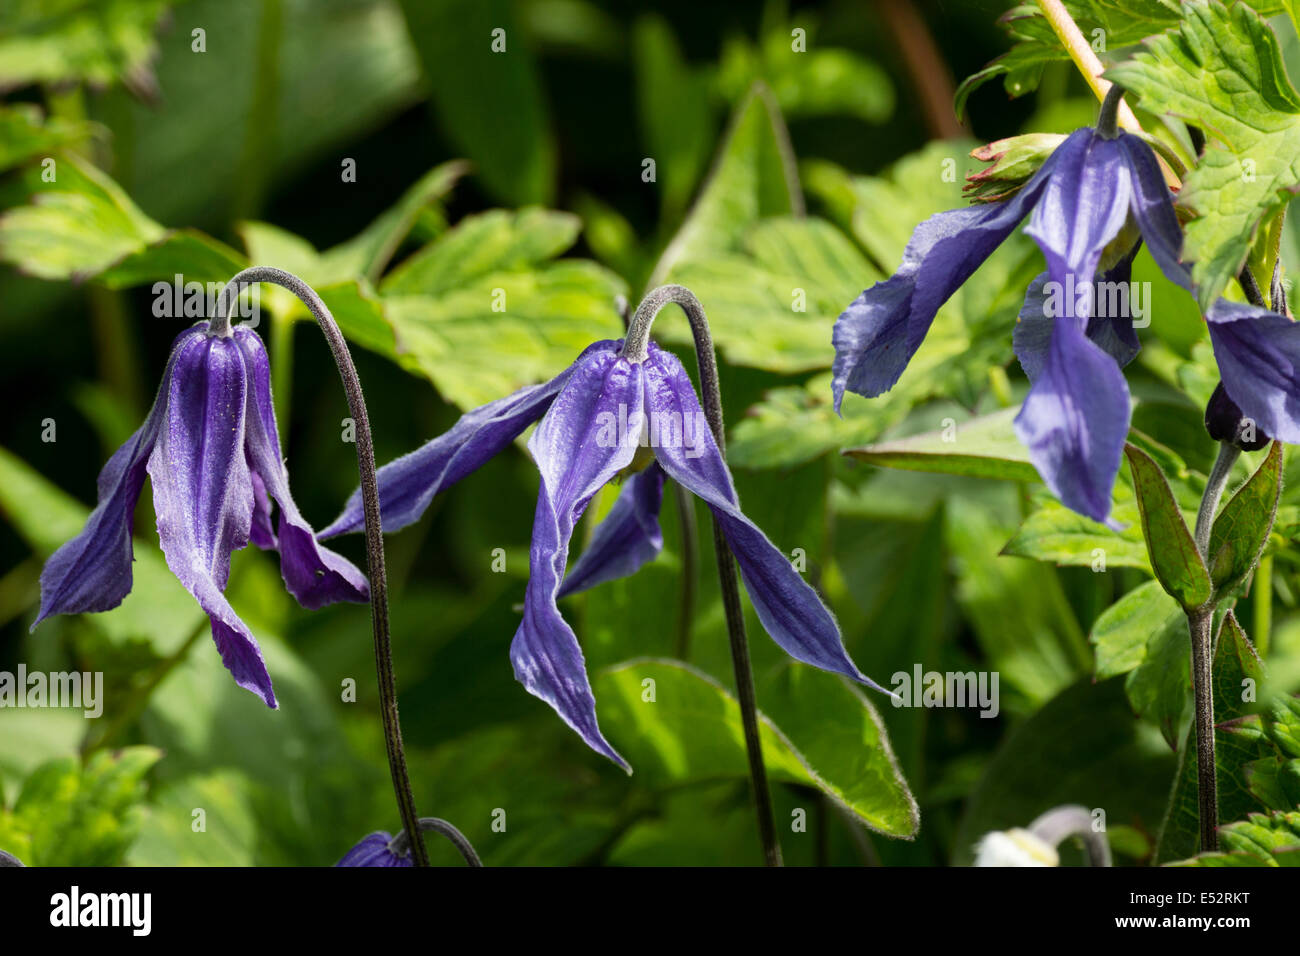 Hanging flowers of the sprawling perennial, Clematis integrifolia - Stock Image